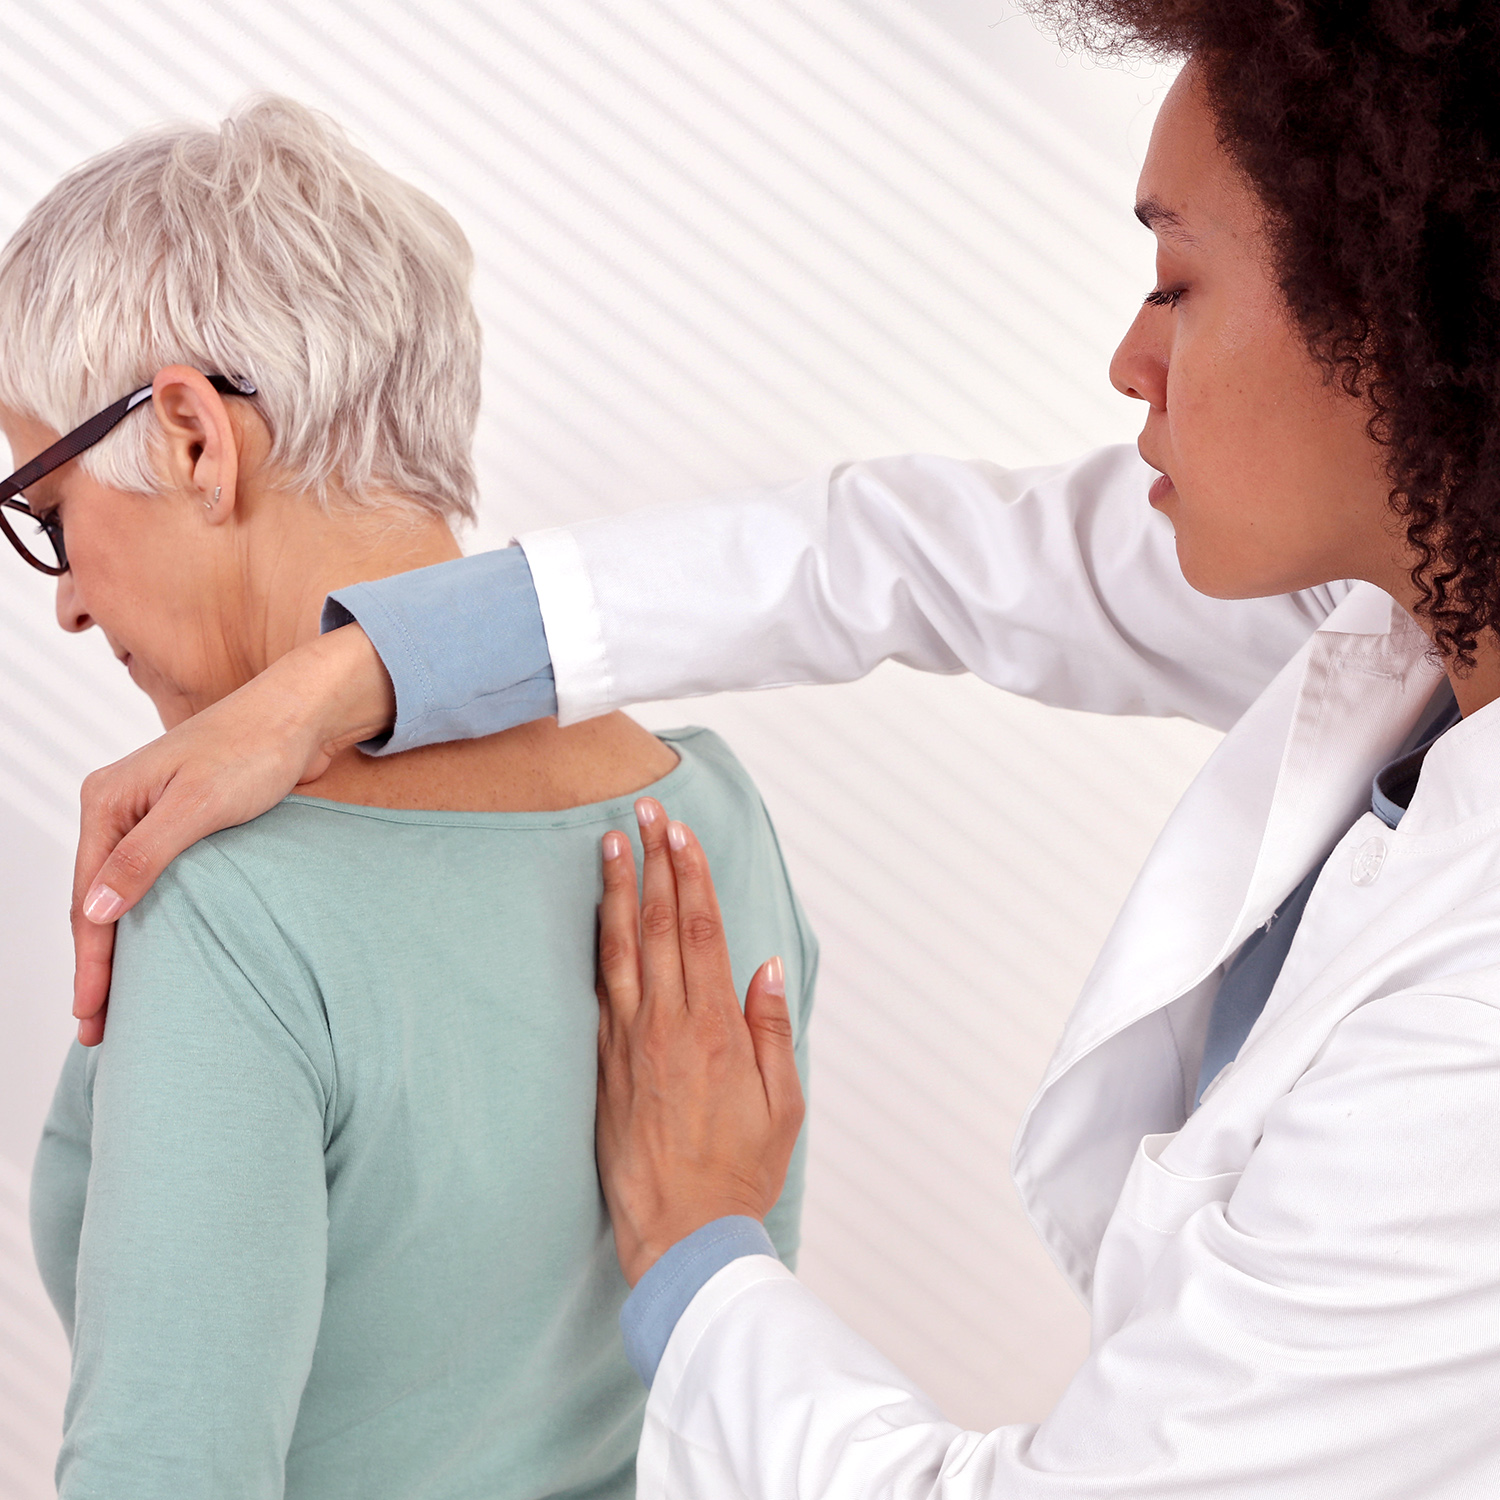 chiropractic spinal manipulation_gettyimages-1141753224_square.jpg